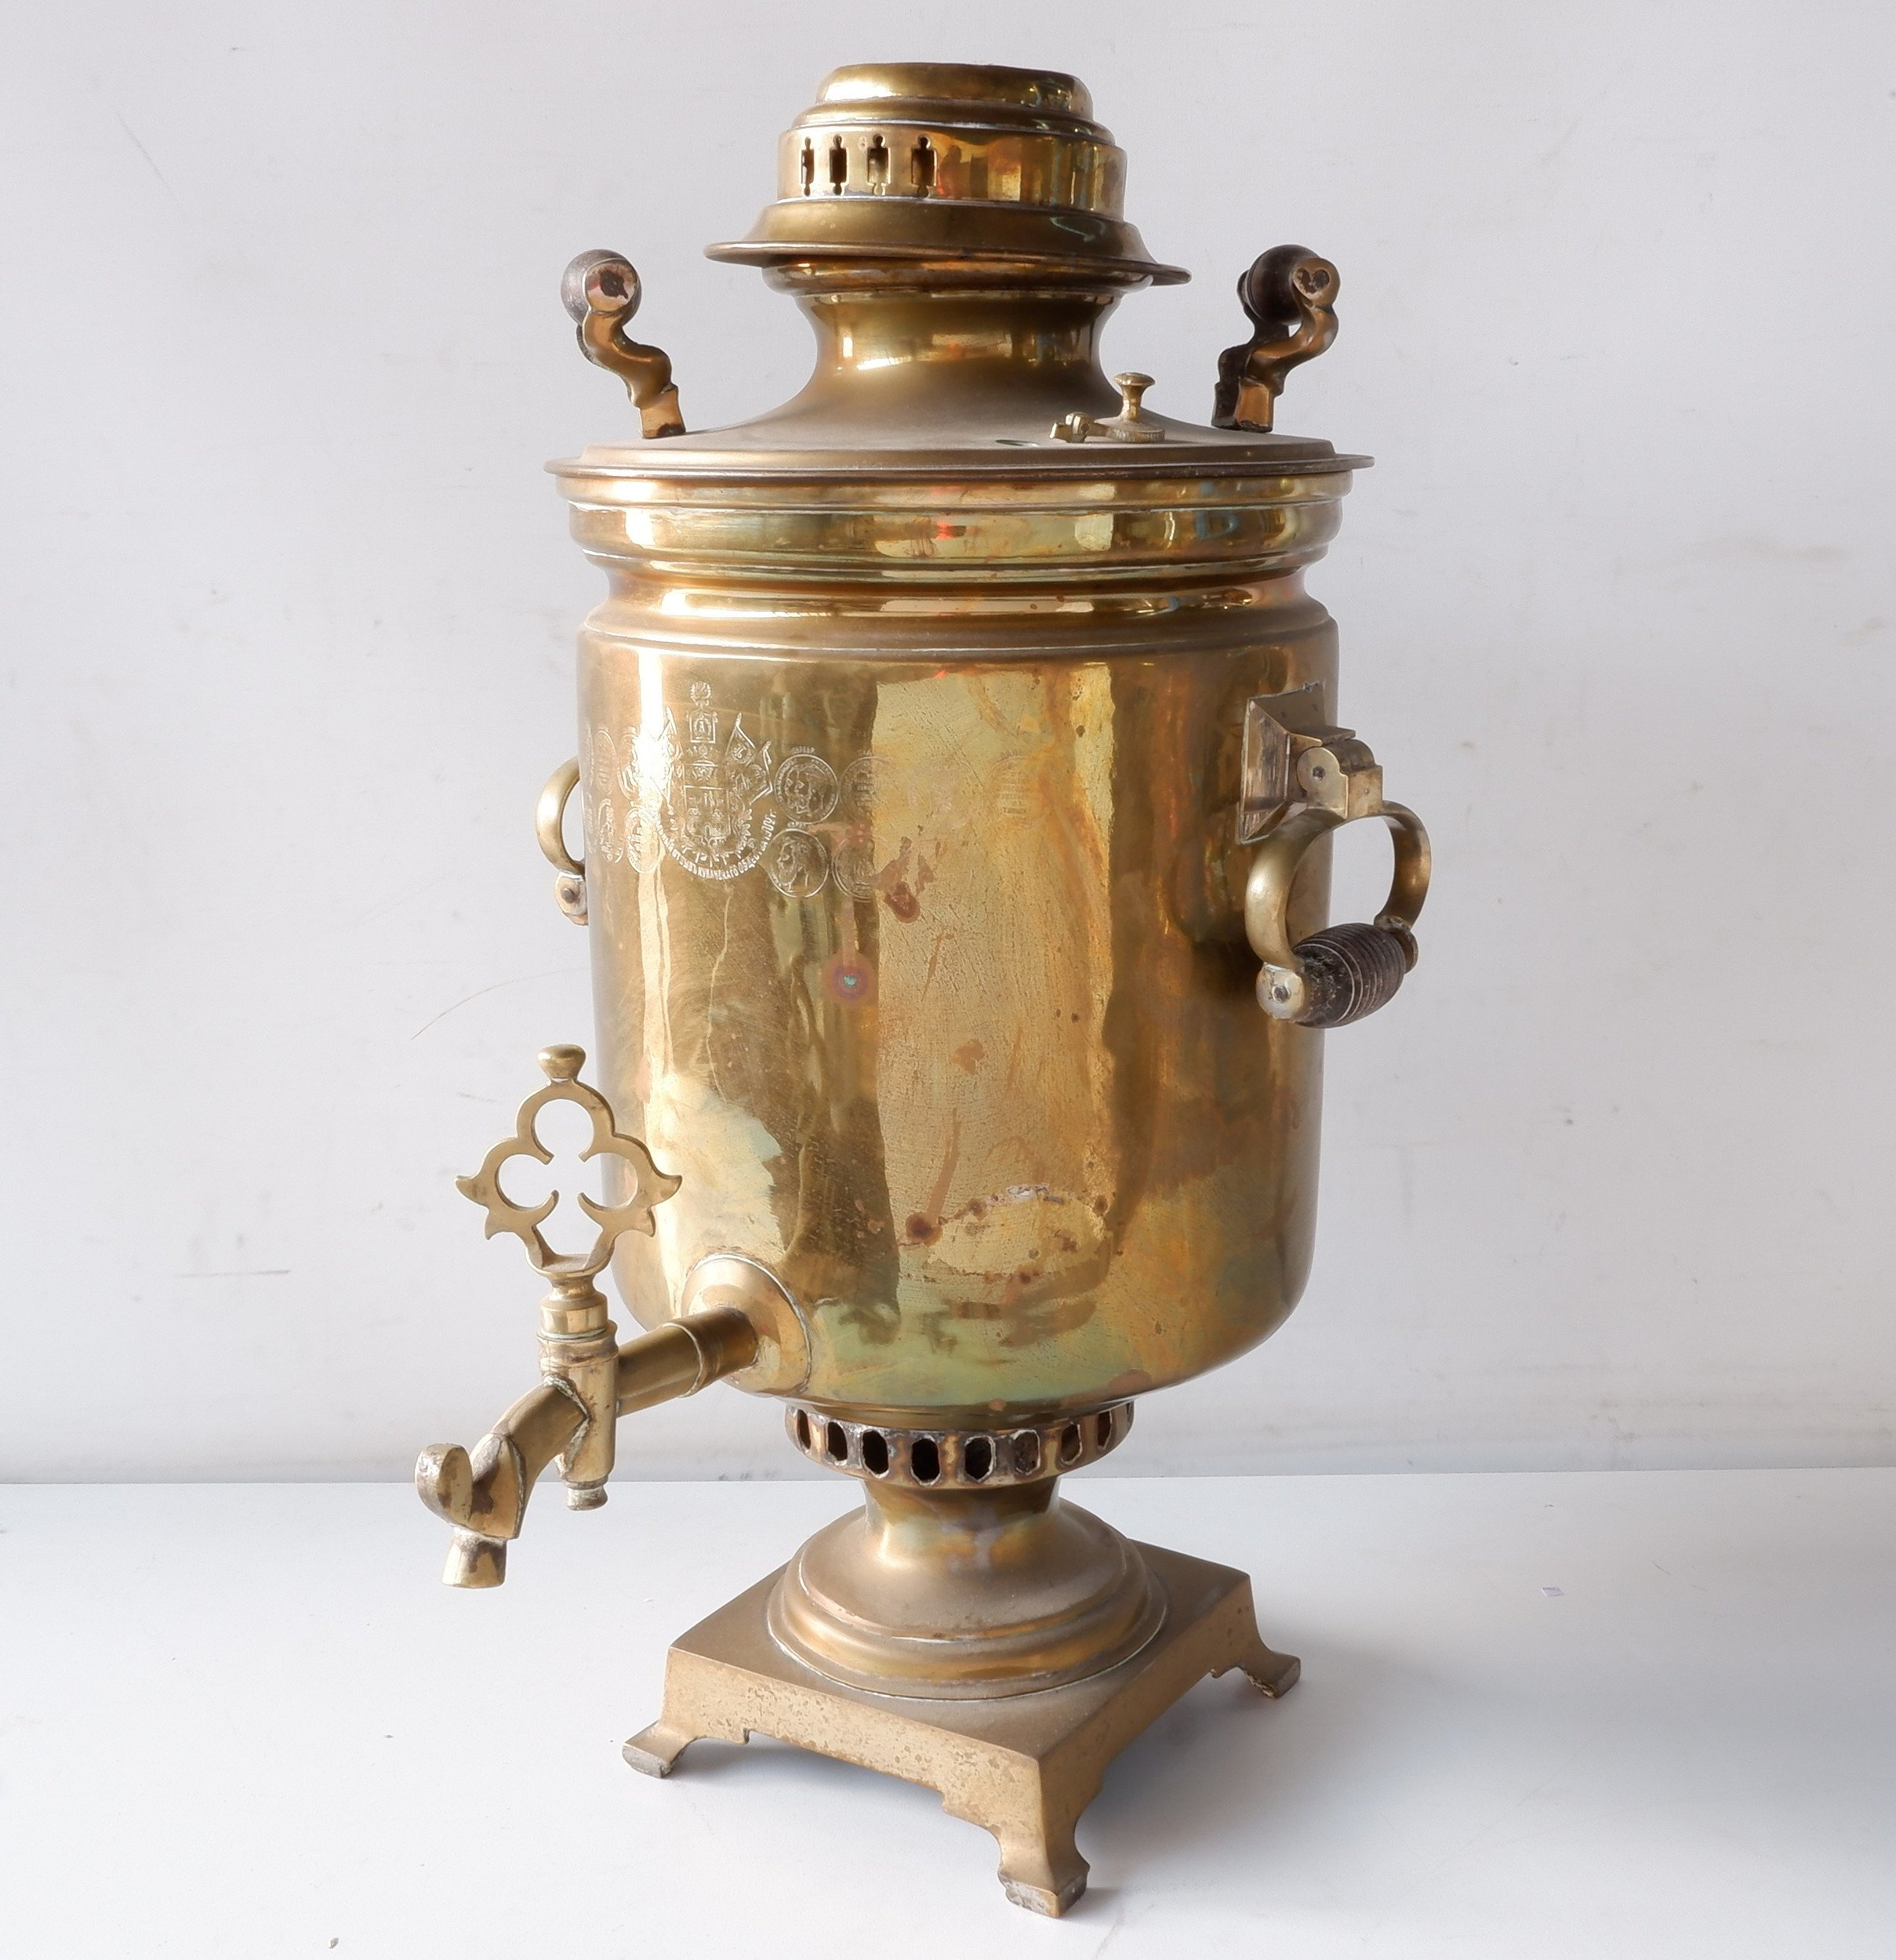 'Large Russian Brass Samovar'